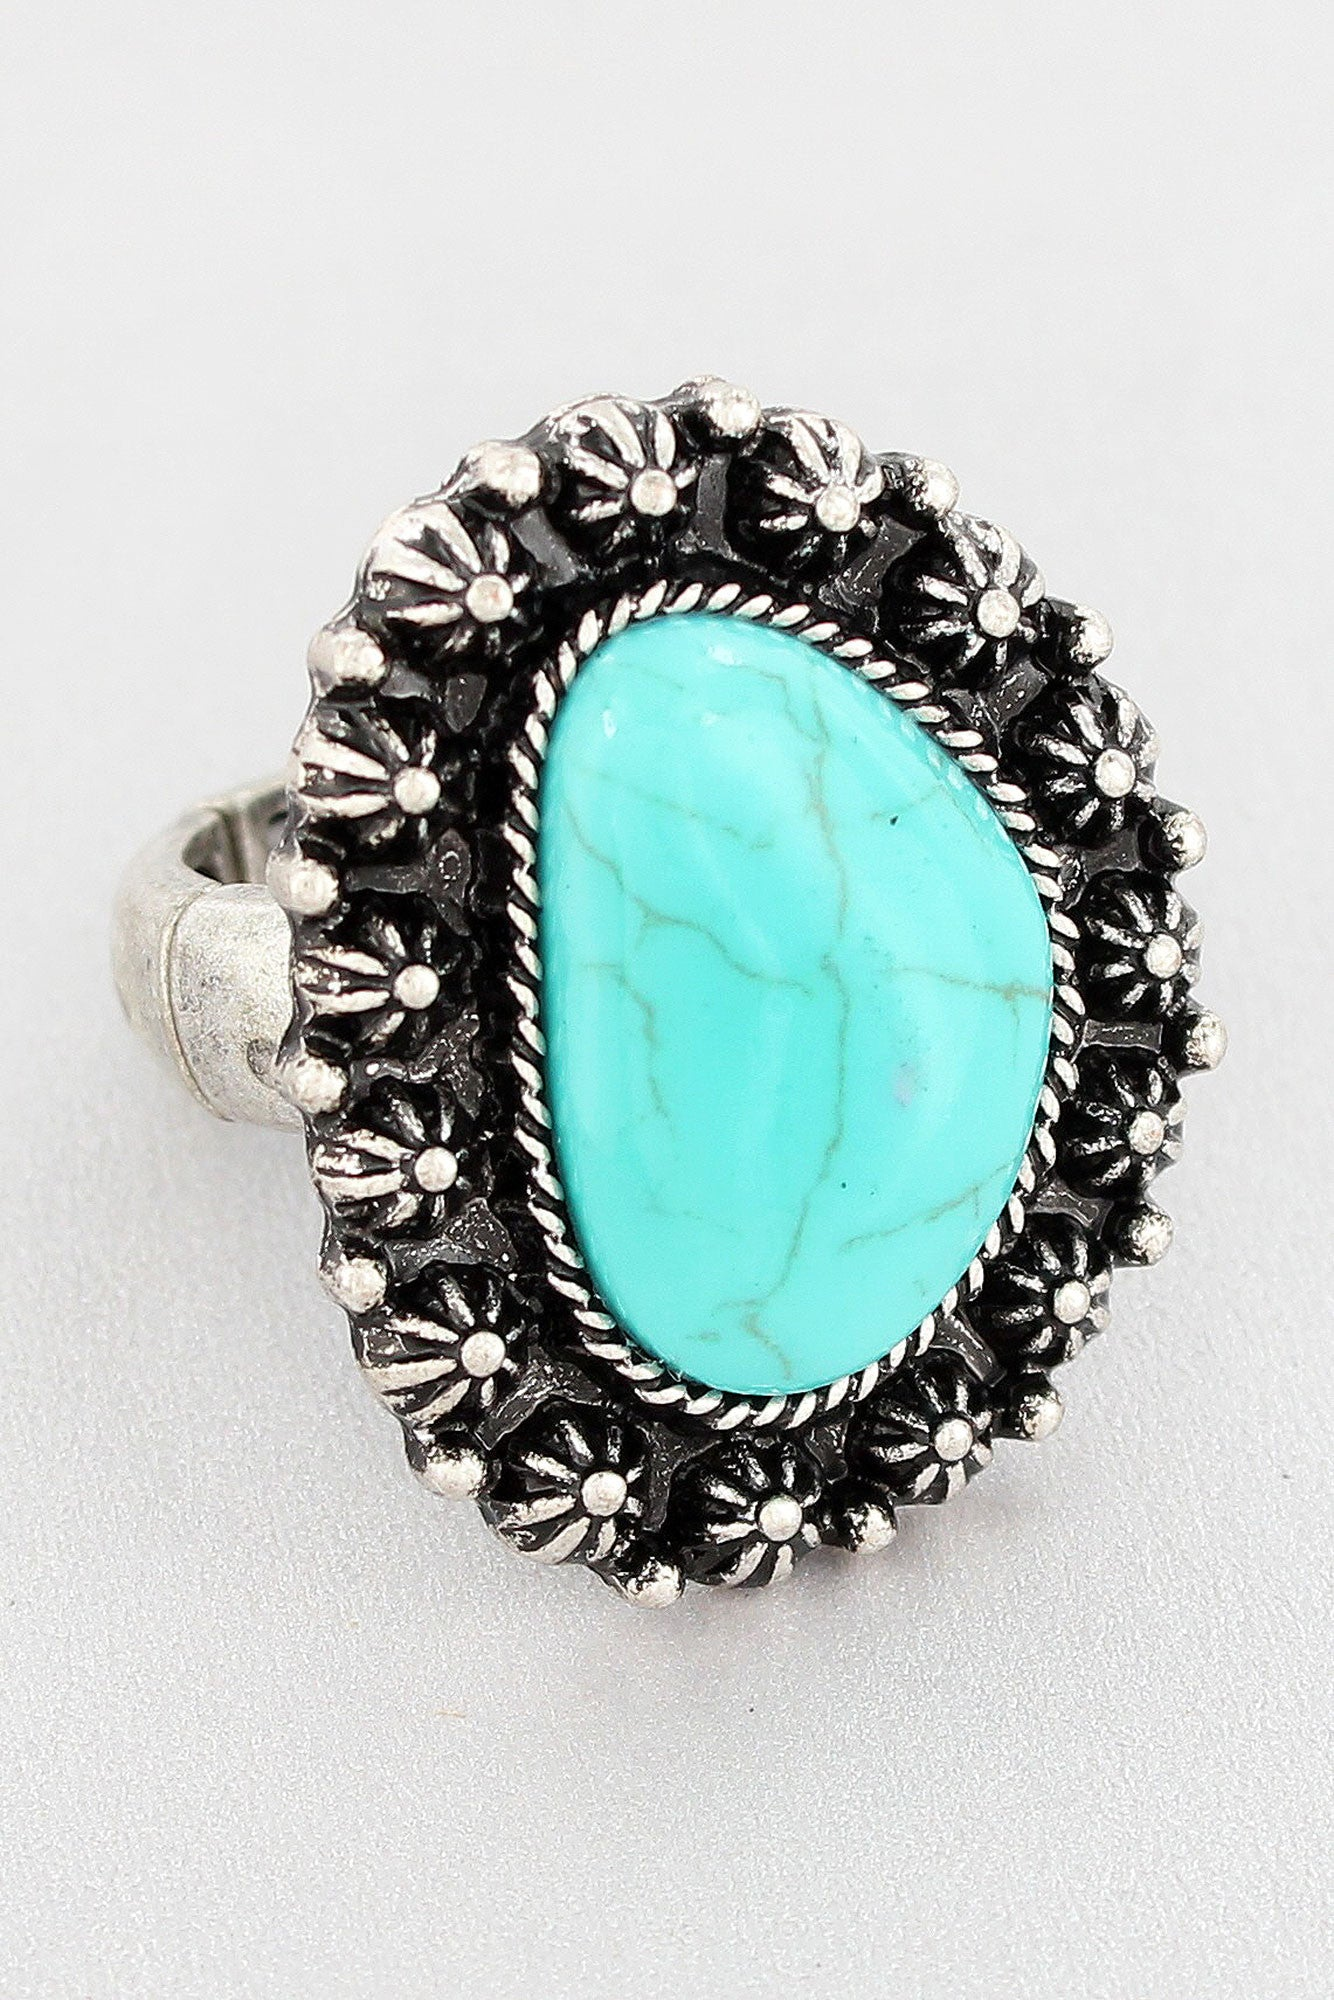 Western Burnished Silvertone and Turquoise Stone Ring #SR0033-SBTQ ...